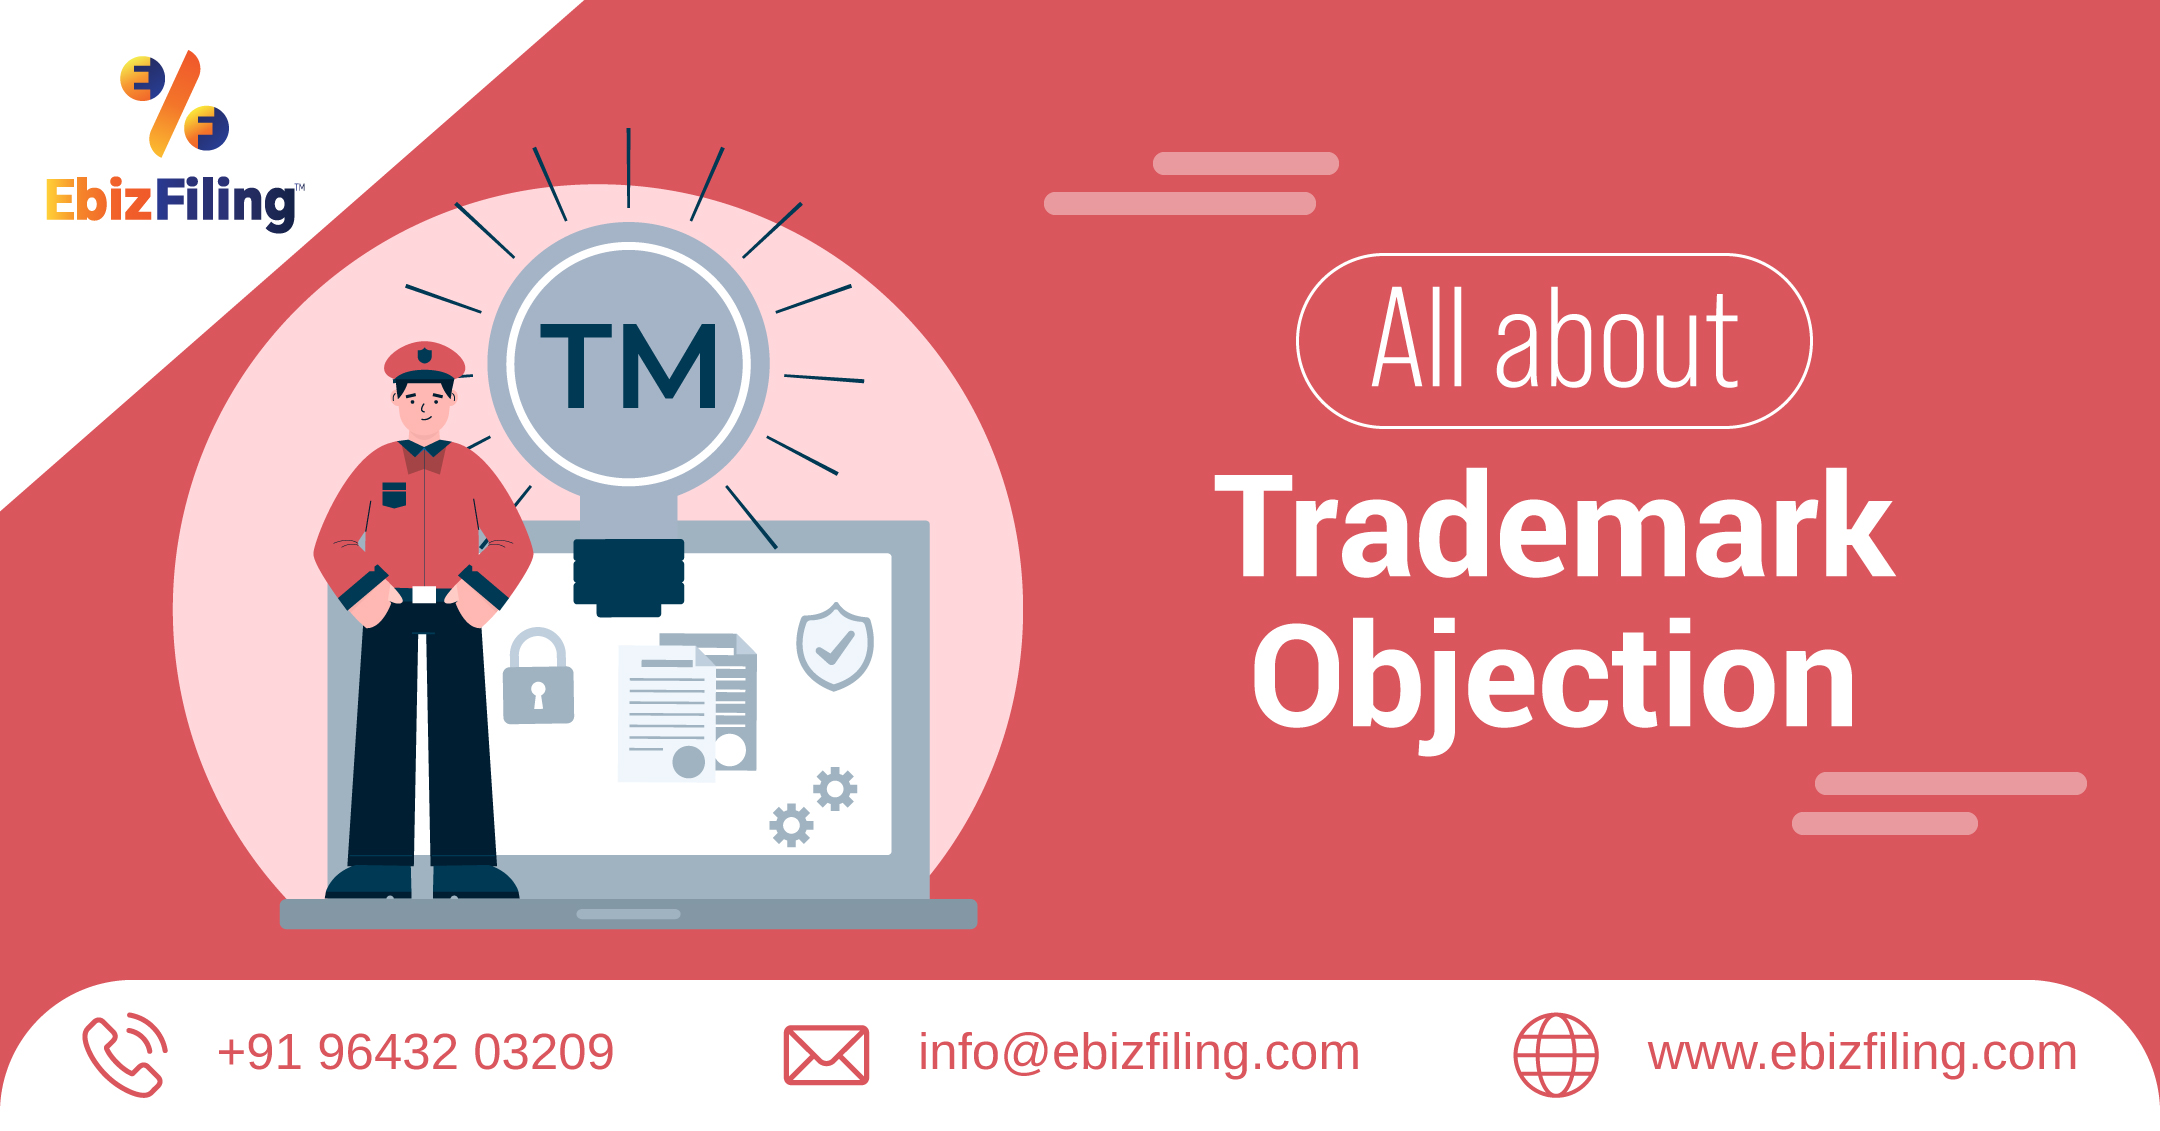 Trademark objection, Trademark Objection Reply, documents required for Trademark objection, ebizfiling, trademark registration, trademark examination